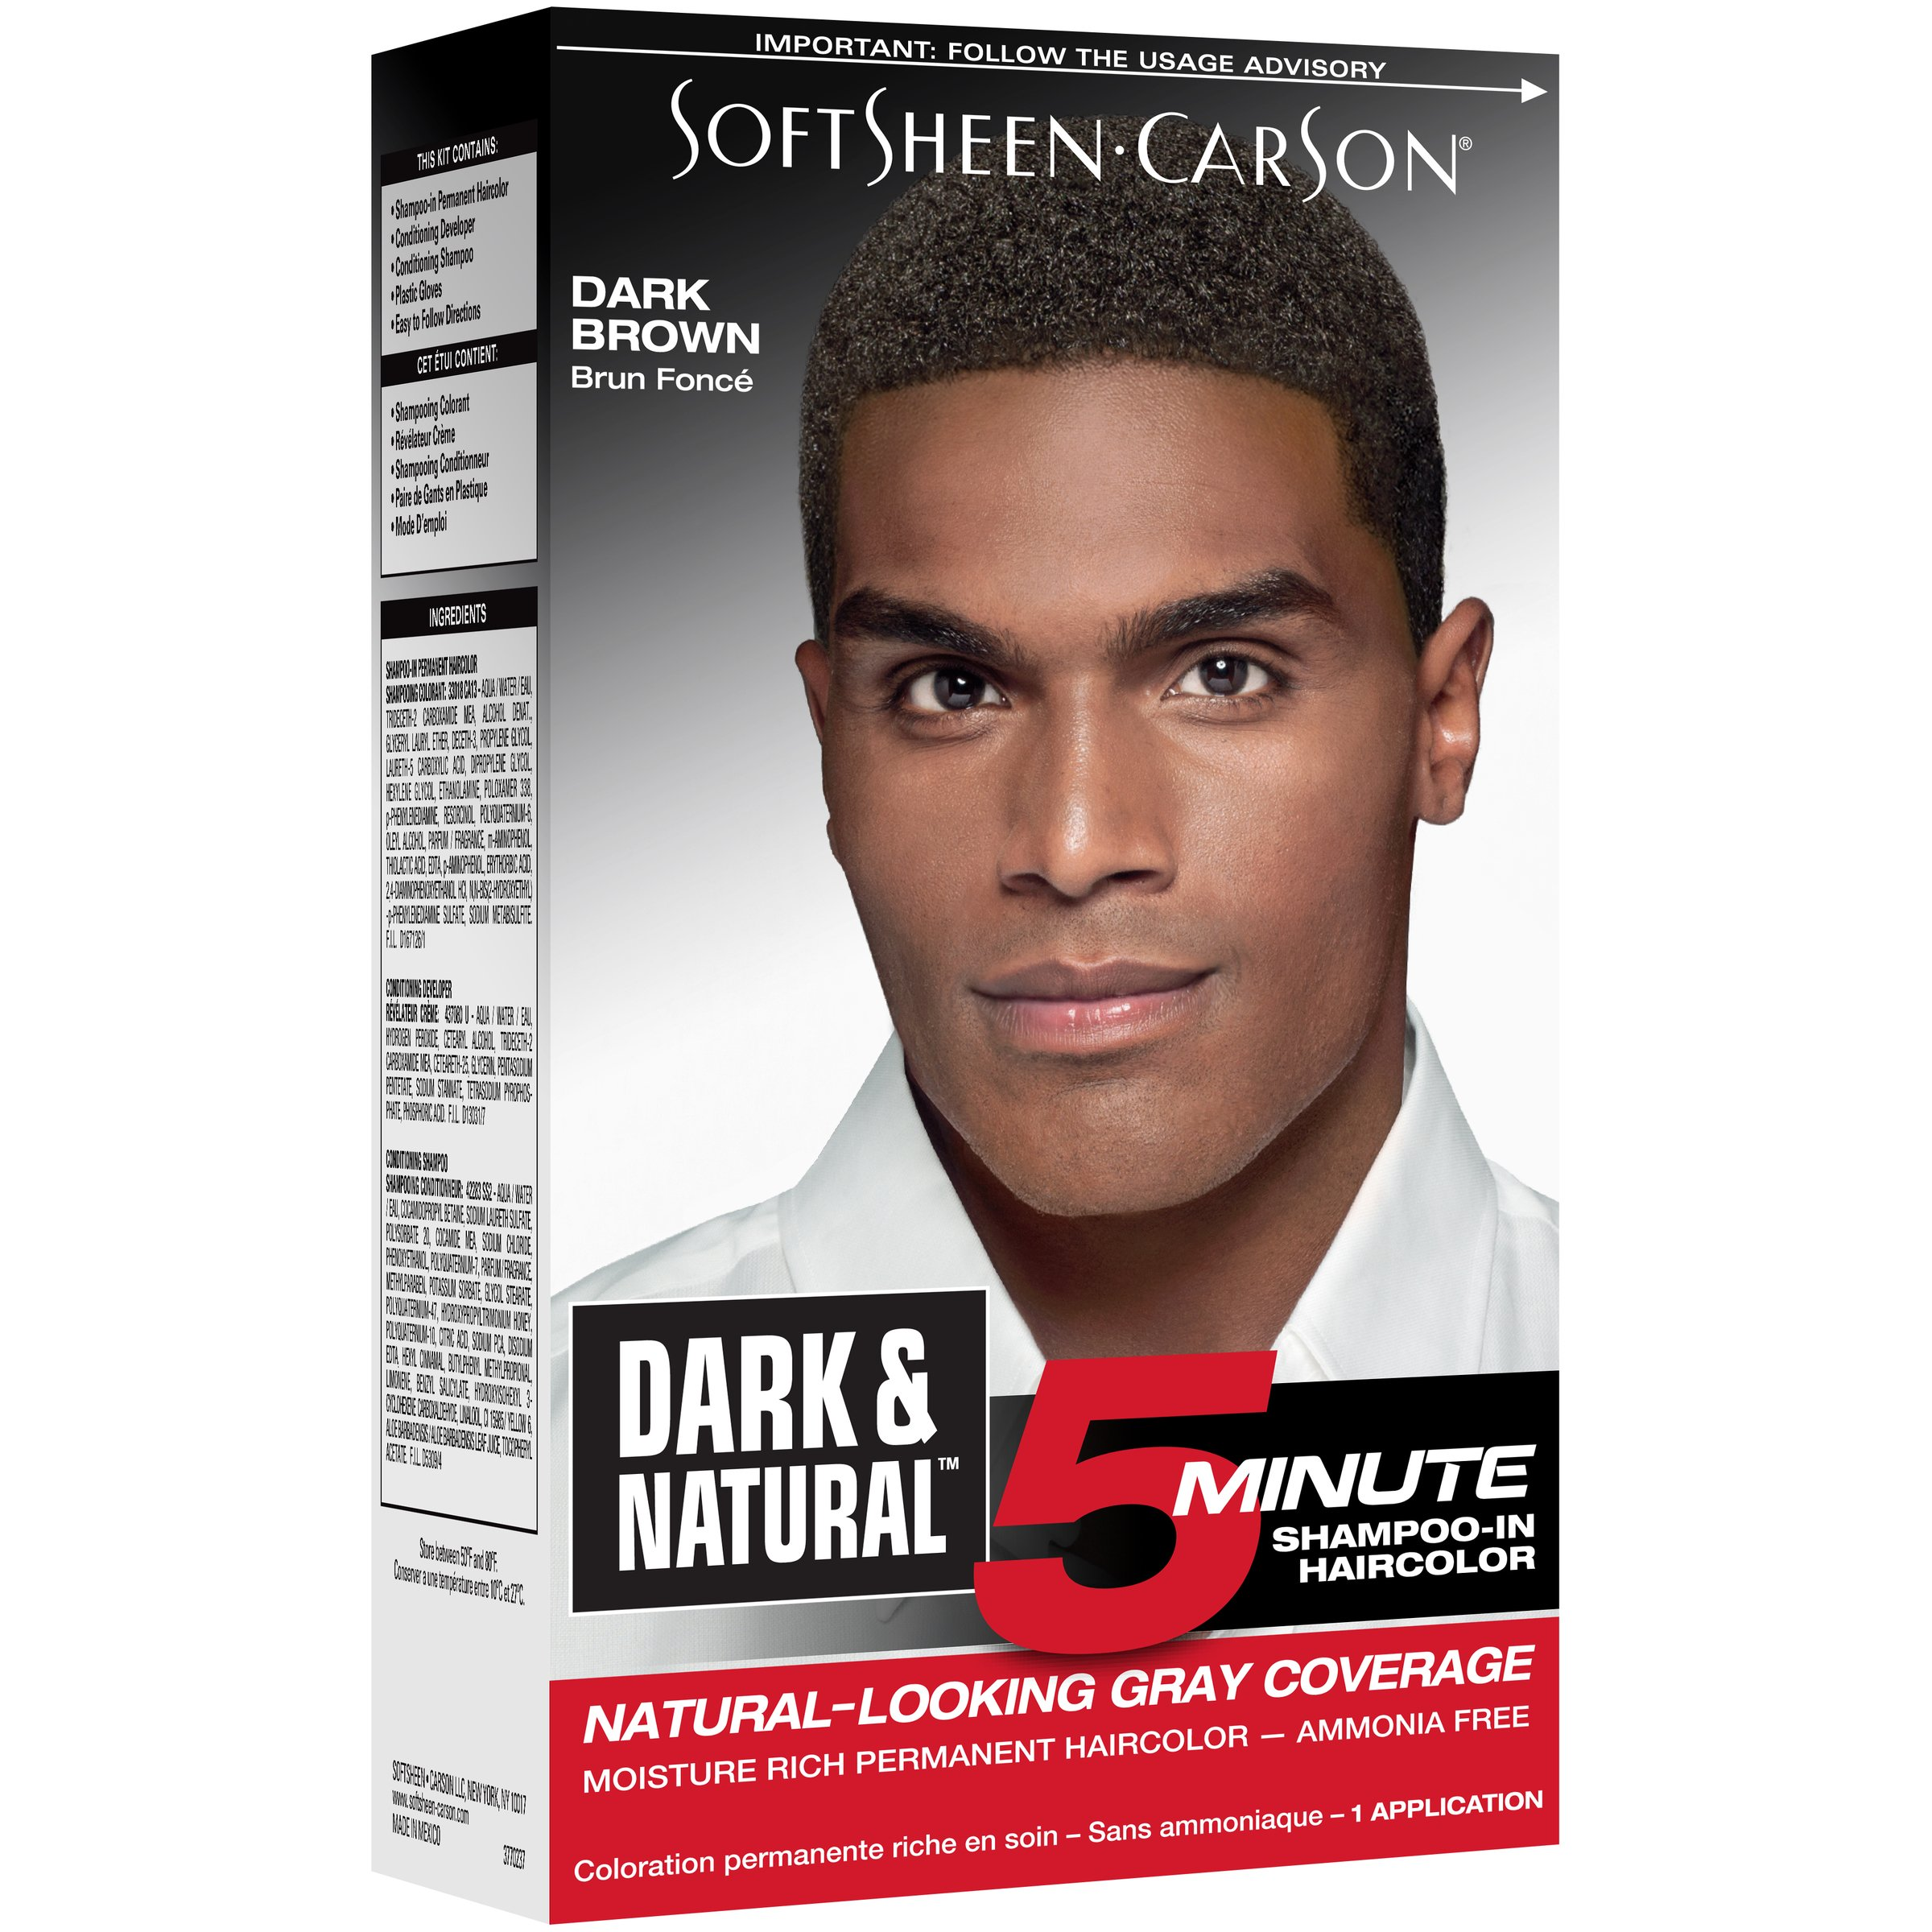 Softsheen Carson Dark Natural 5 Minute Shampoo In Haircolor Dark